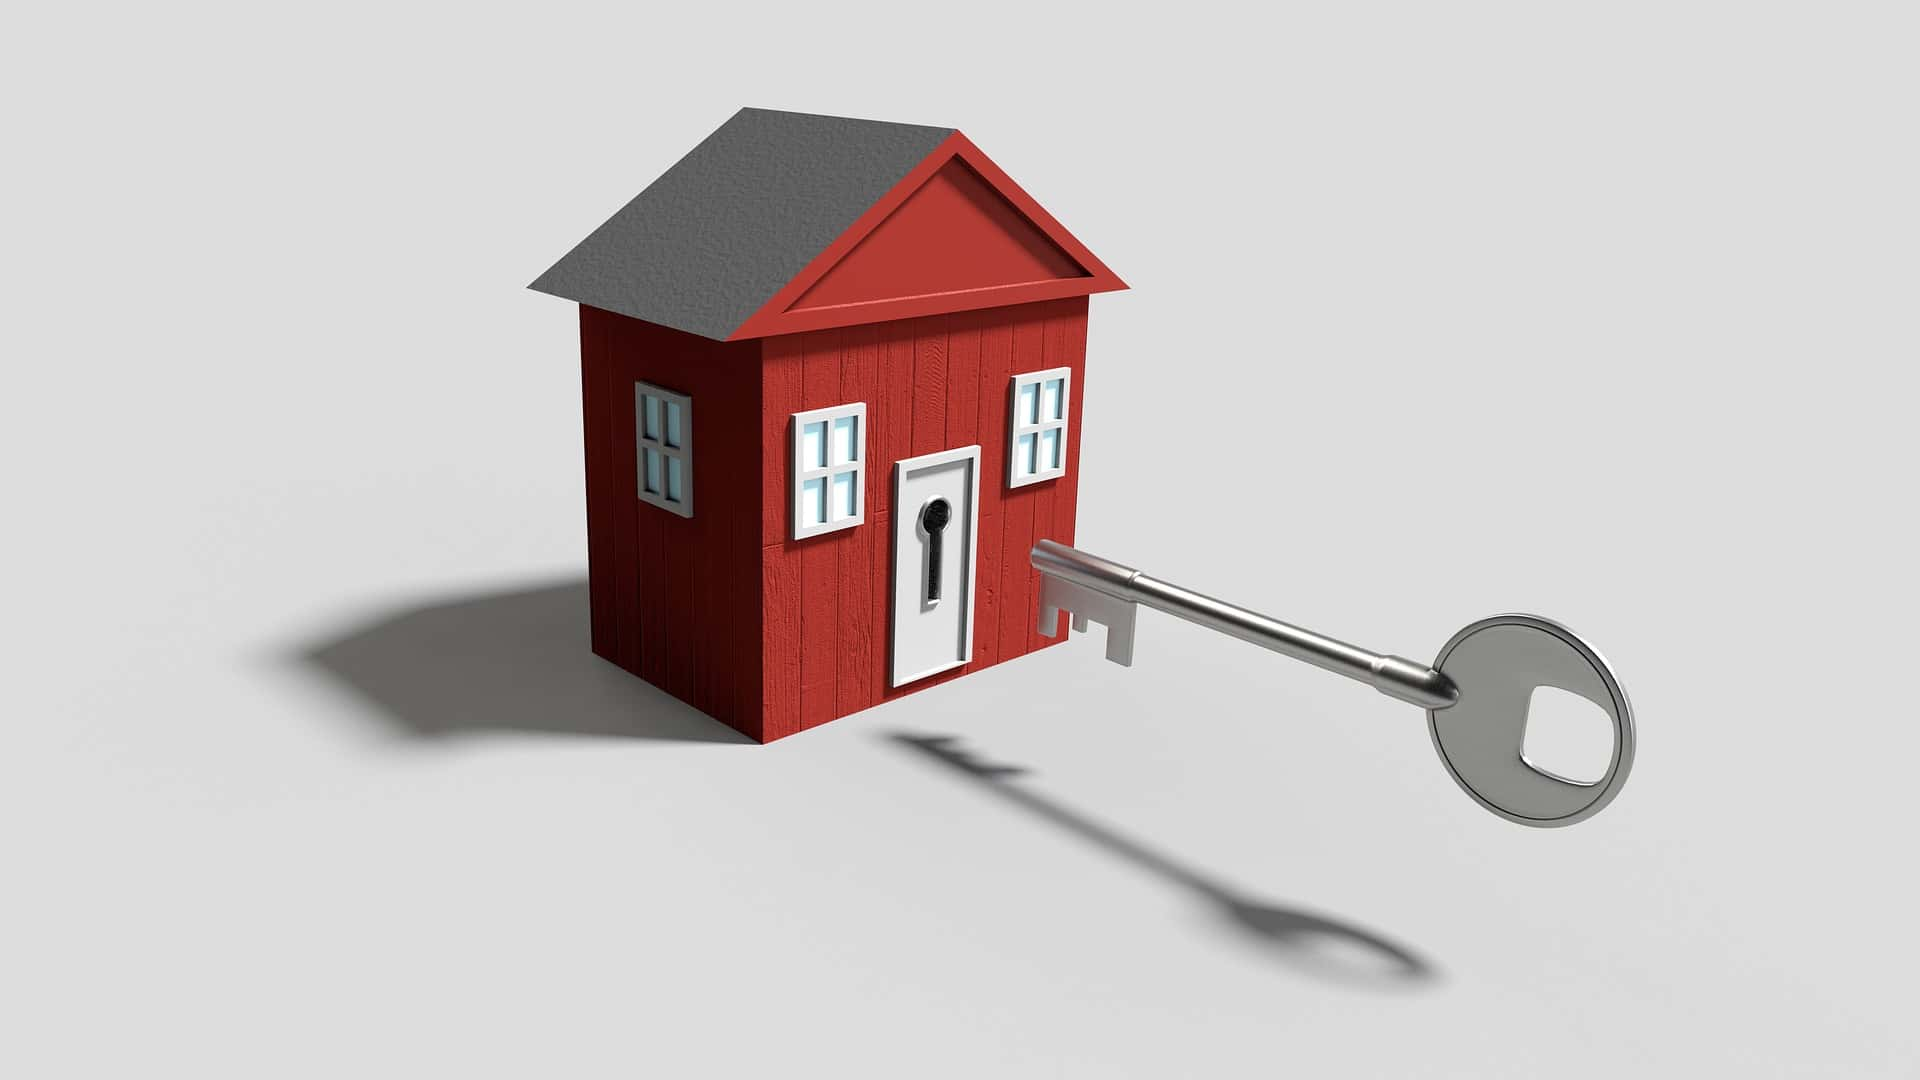 House privacy and security 2